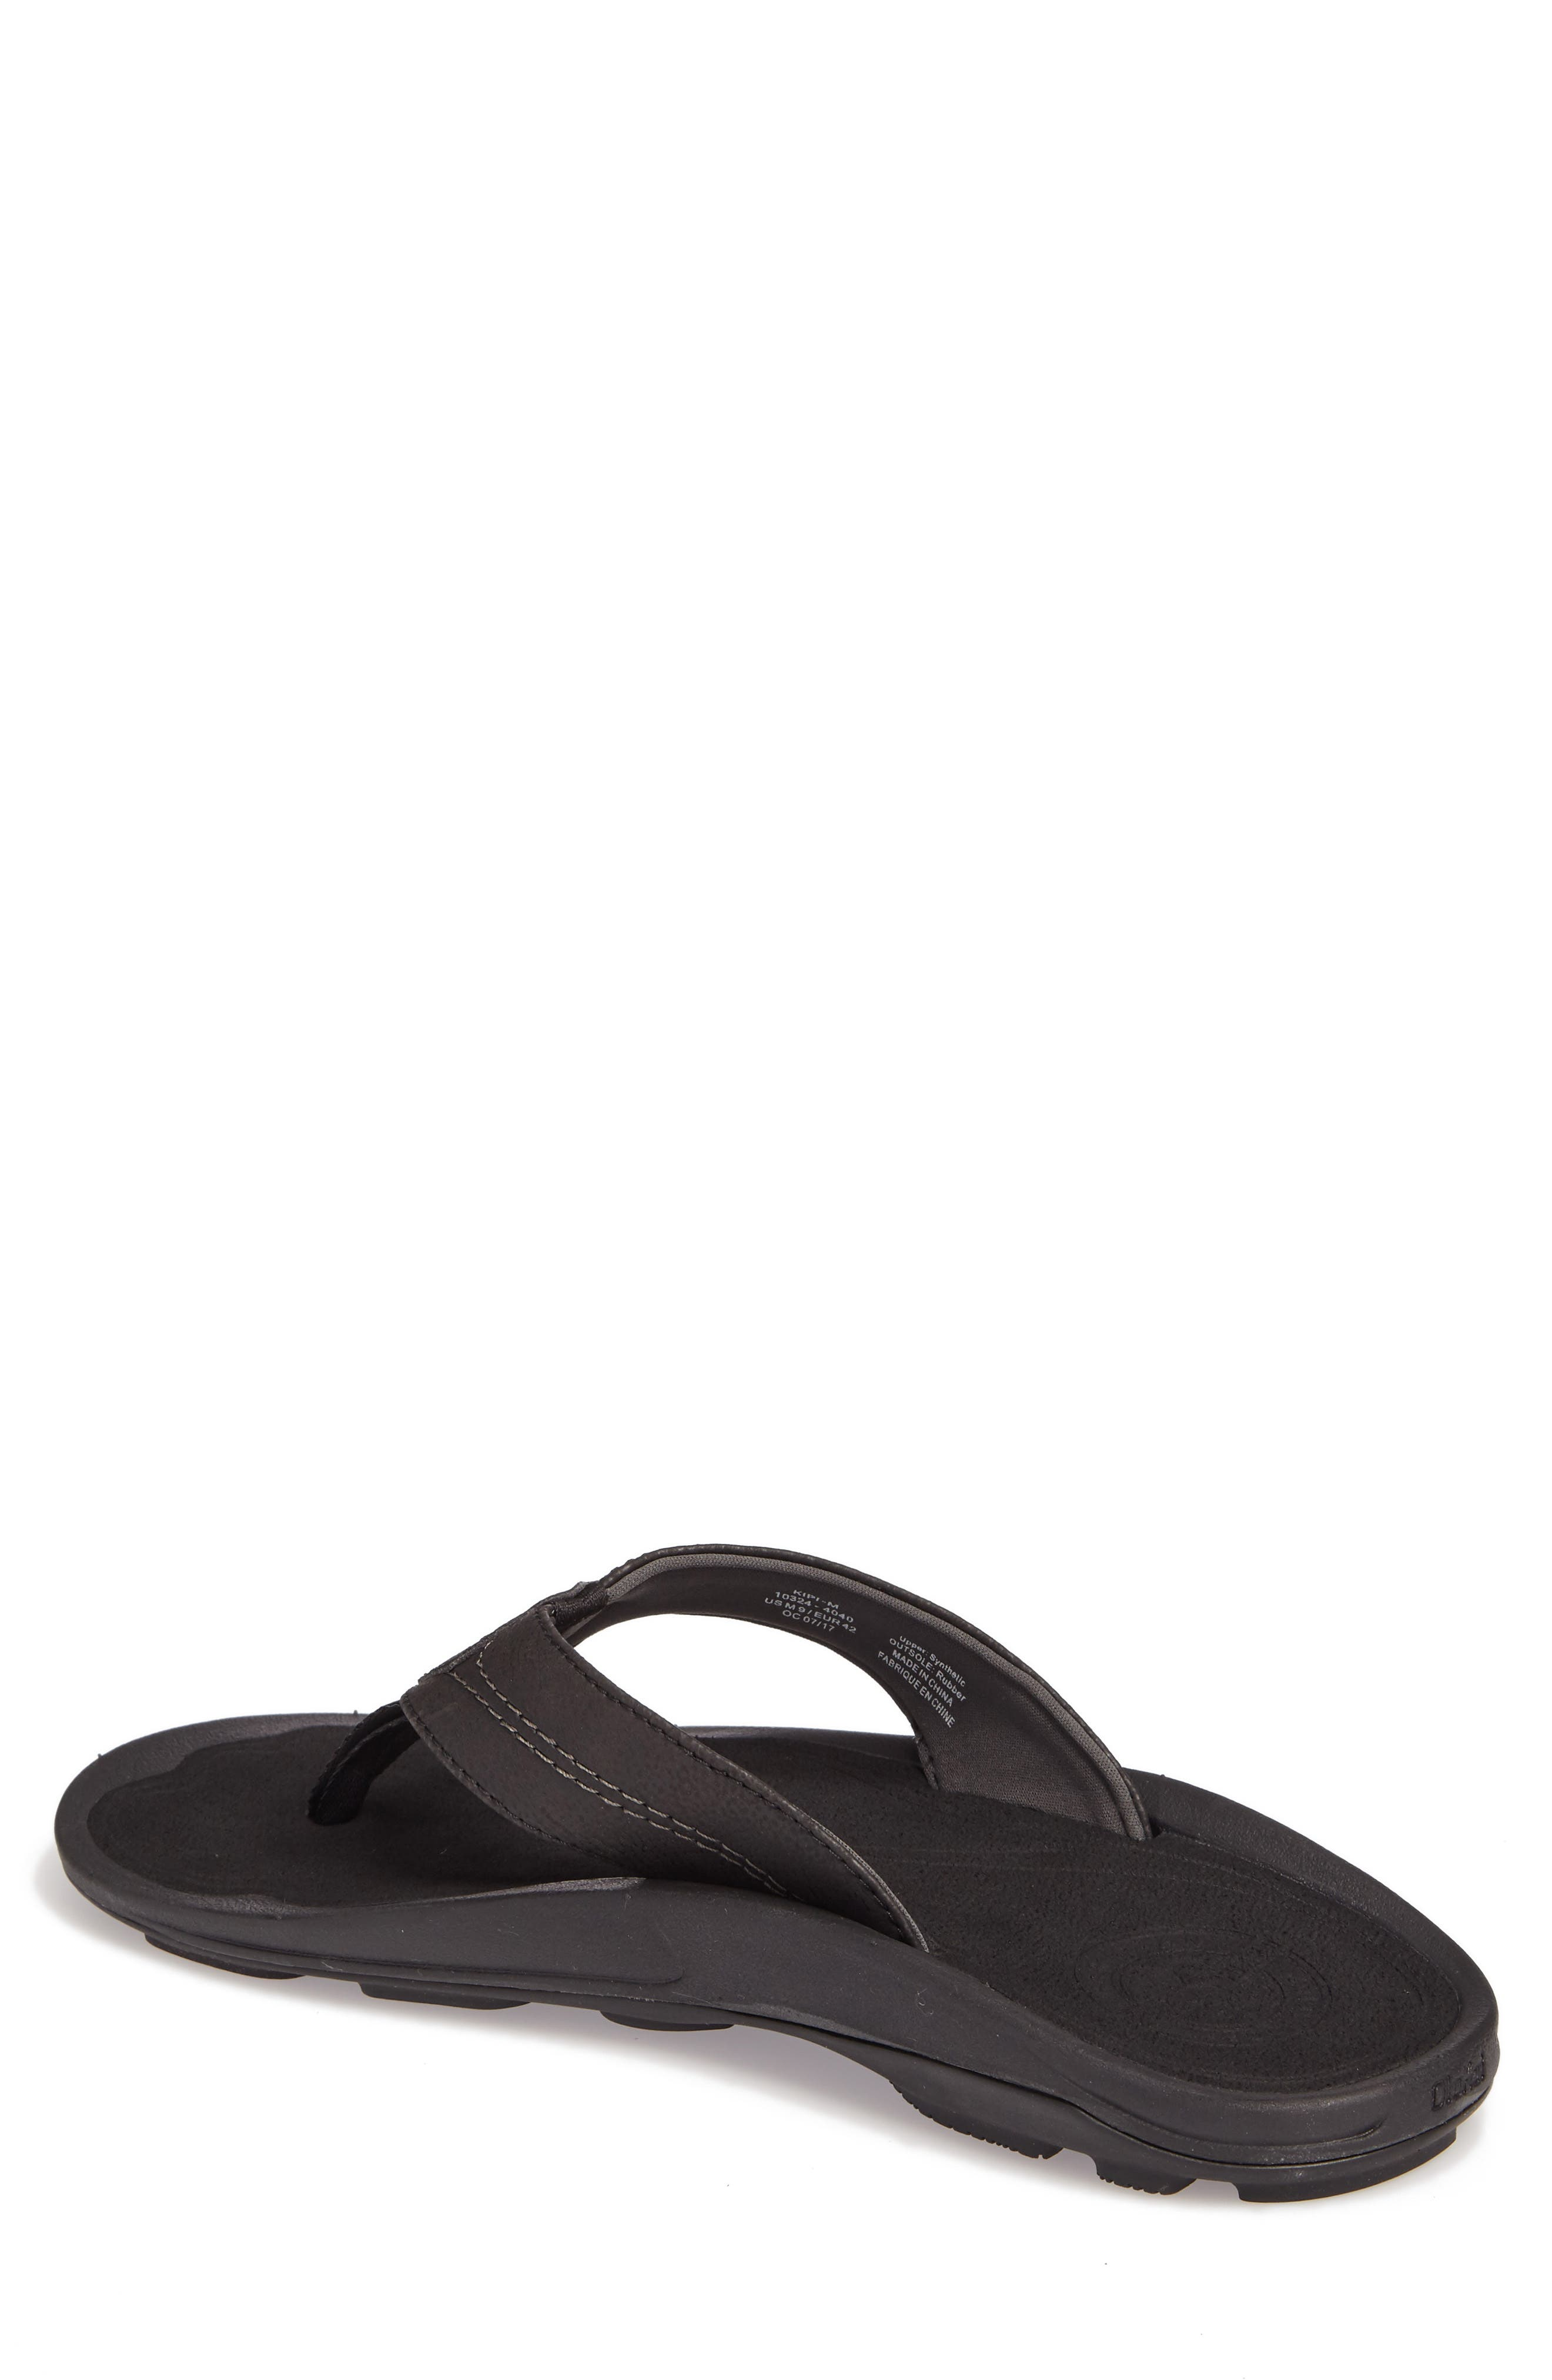 OLUKAI, Kipi Flip Flop, Alternate thumbnail 2, color, BLACK/ BLACK